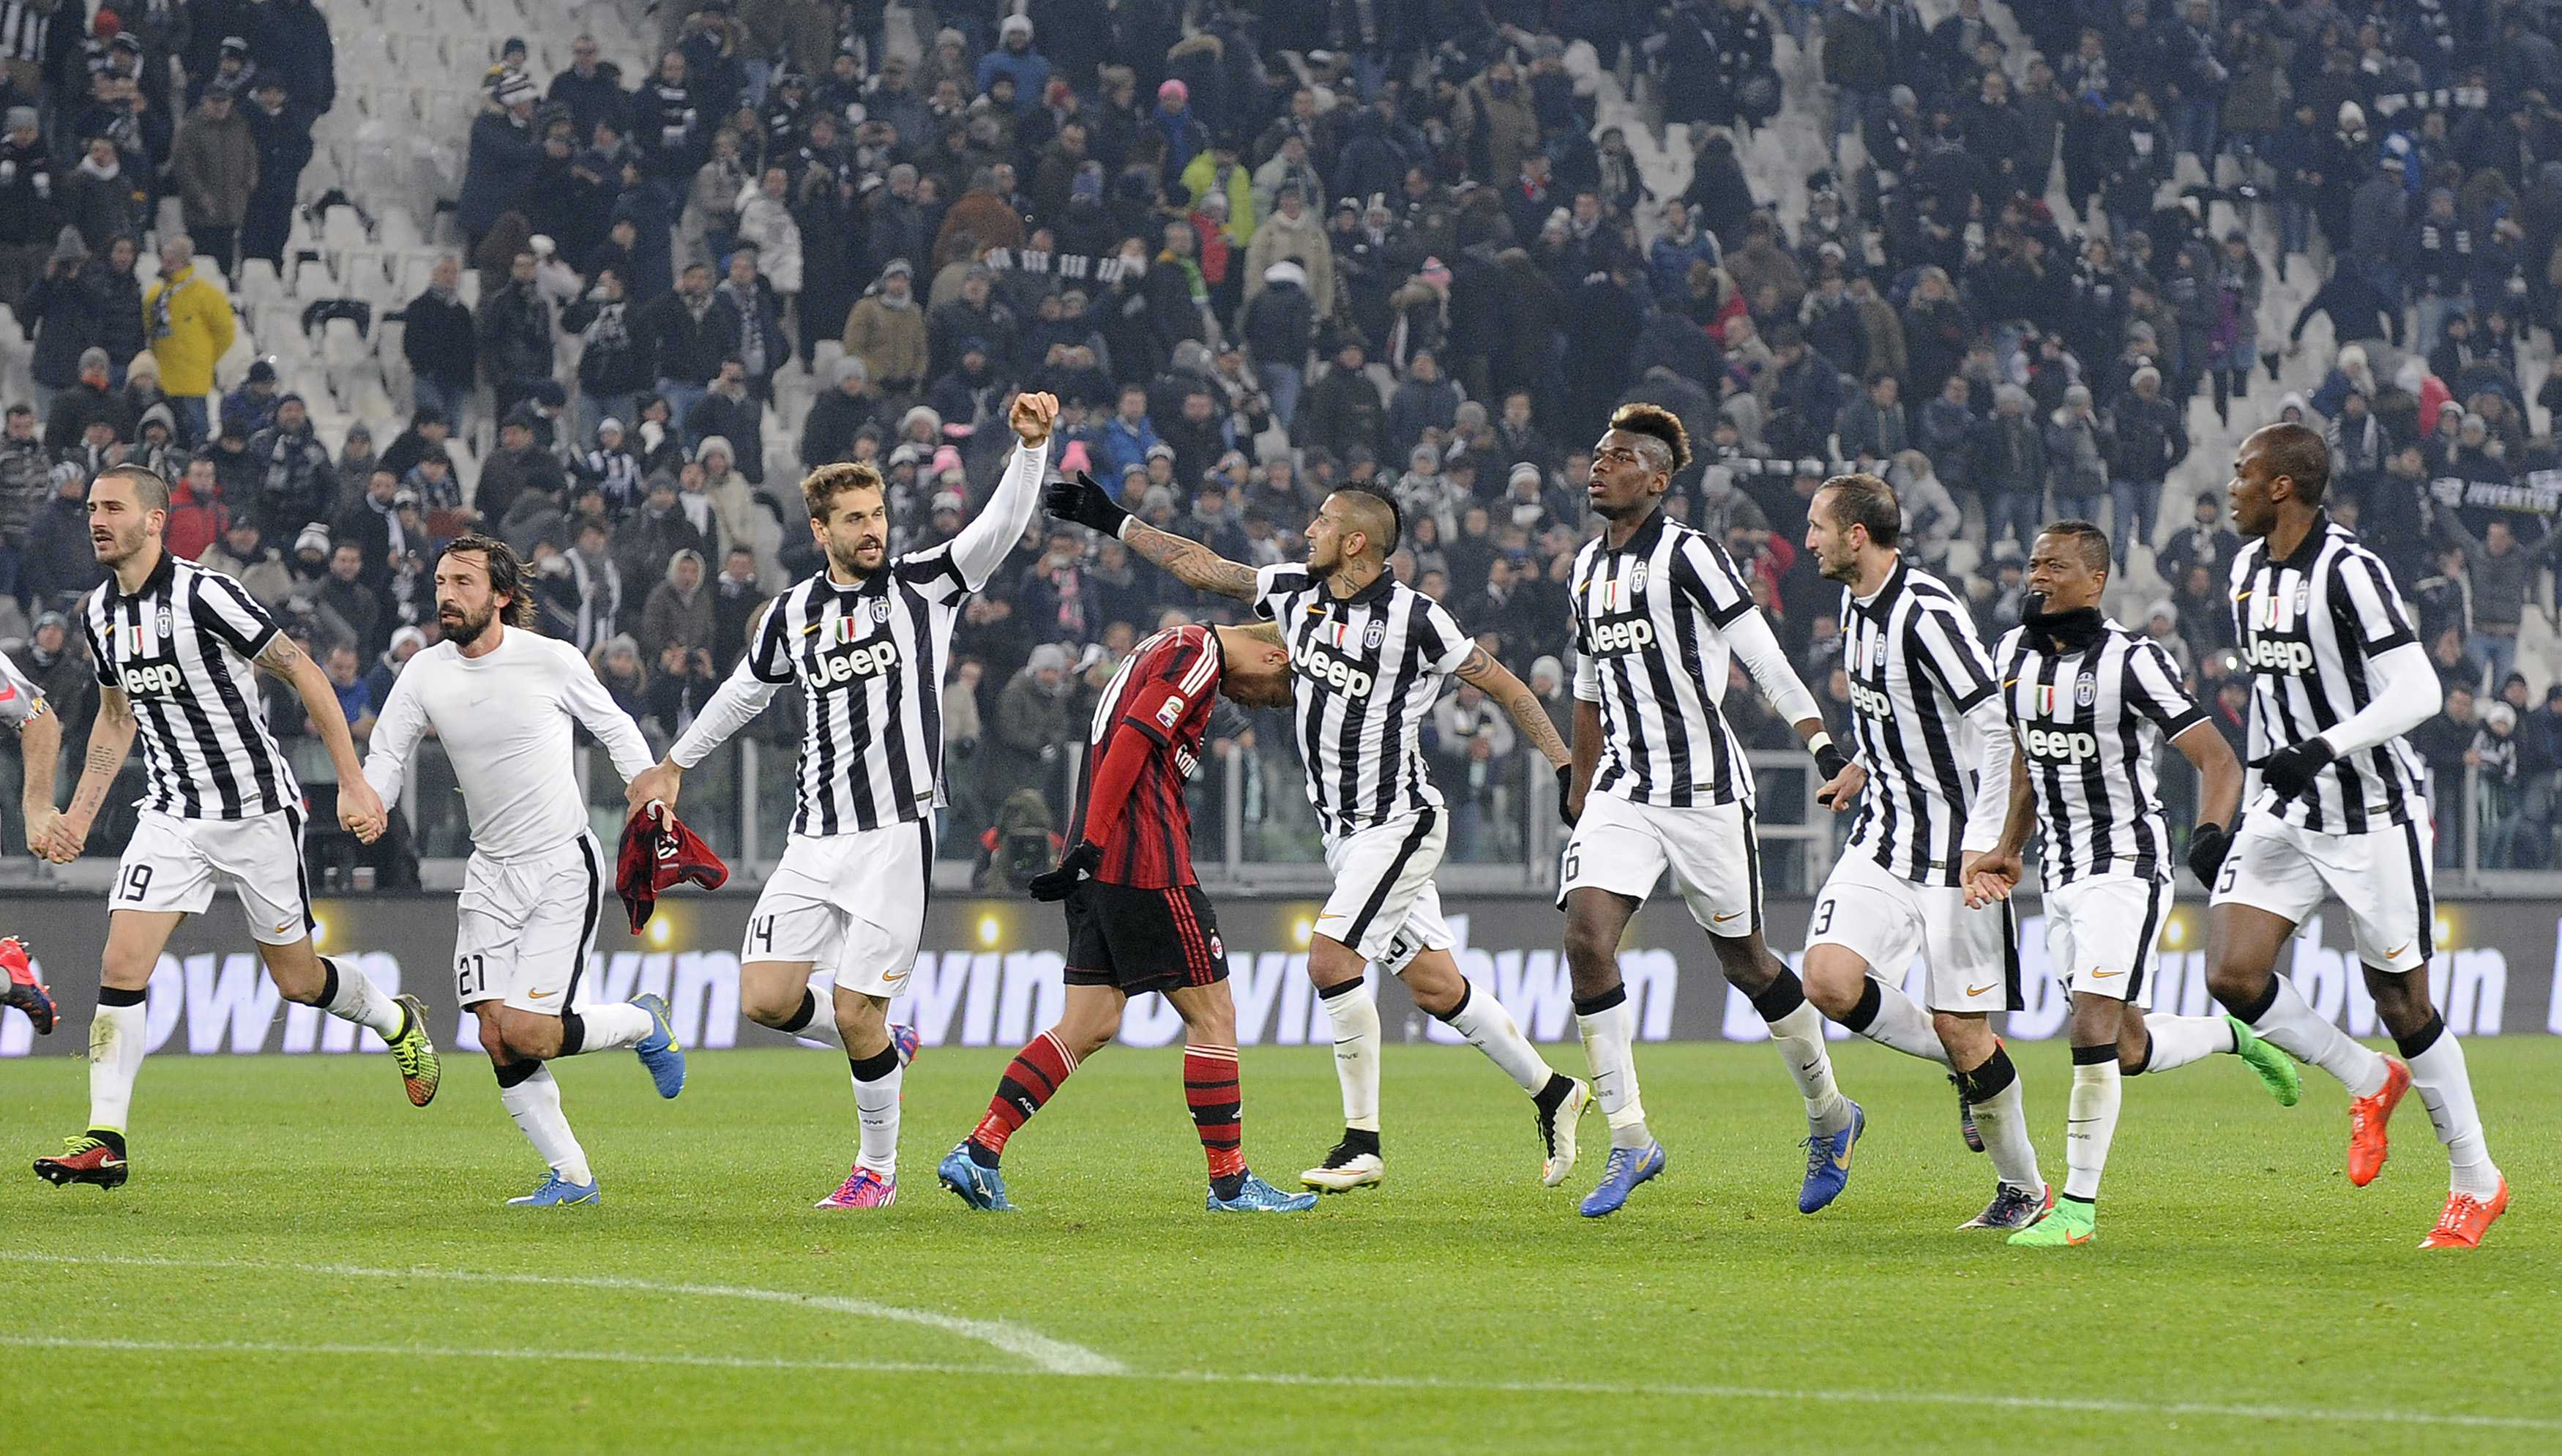 Juventus' players celebrates their win by AC Milan's Keisuke Honda (C) at the end of their Italian Serie A soccer match at Juventus Stadium in Turin, February 7, 2015. REUTERS/Giorgio Perottino (ITALY - Tags: SPORT SOCCER)